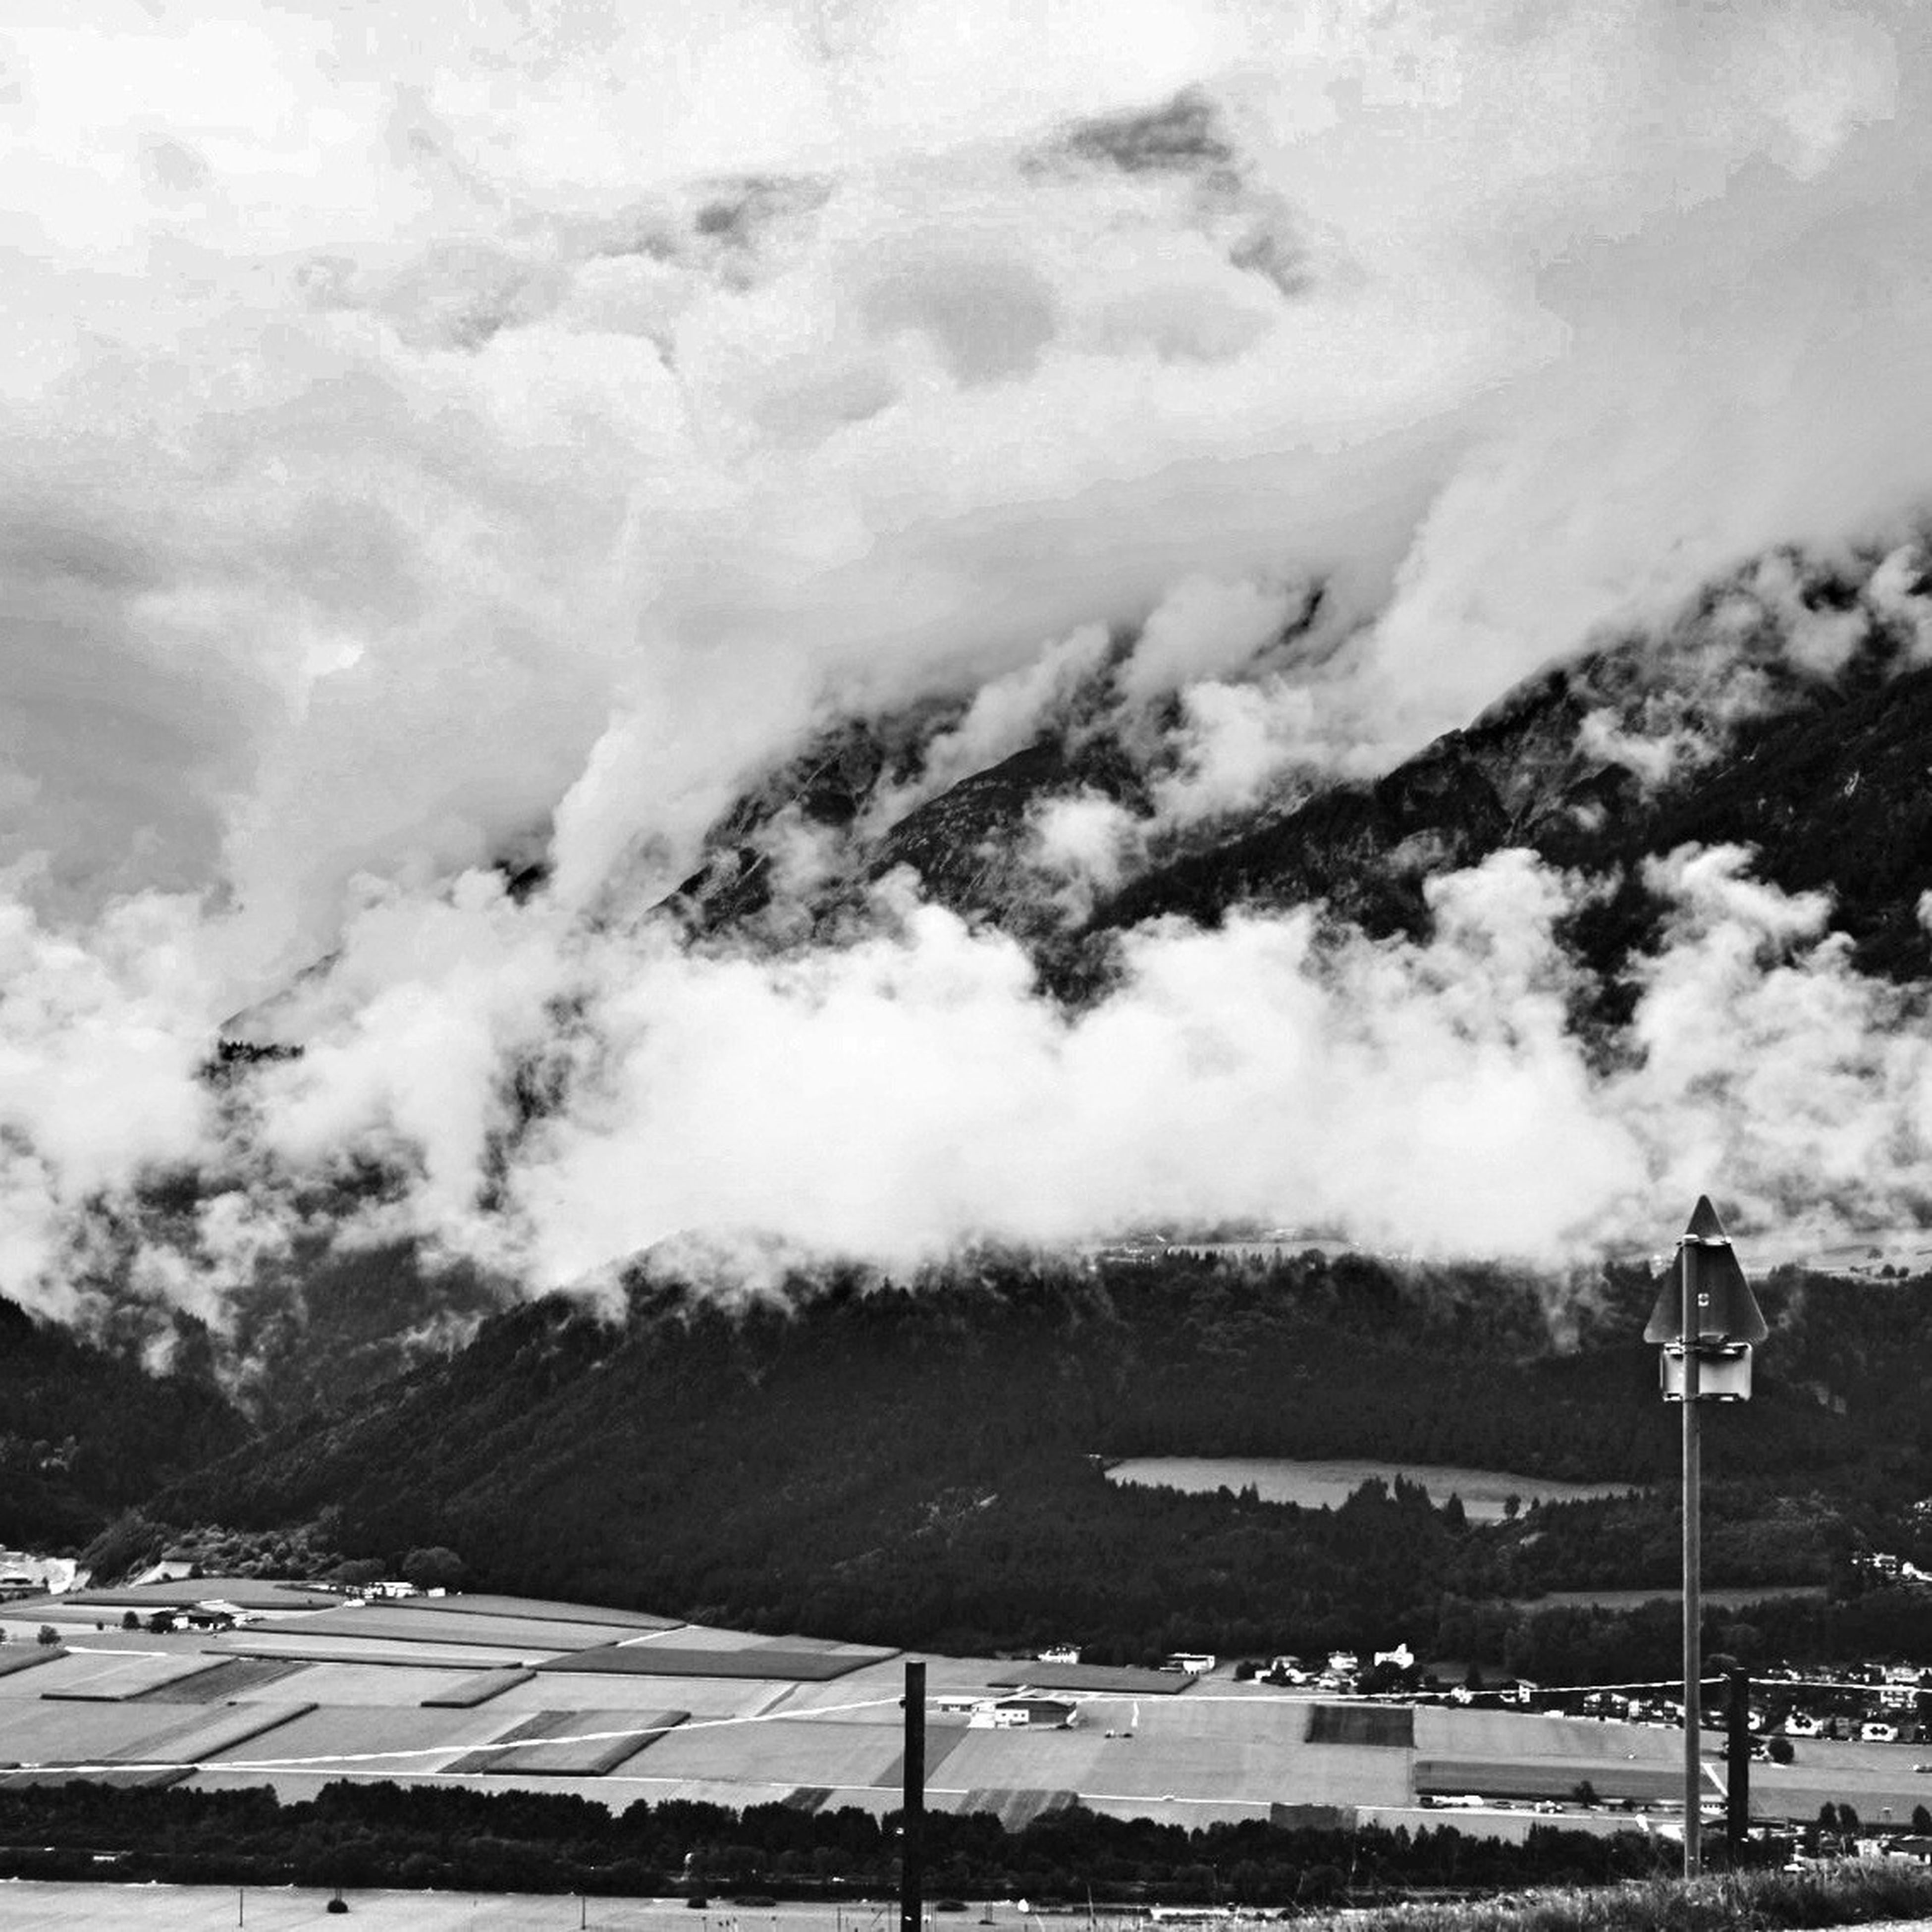 mountain, sky, mountain range, cloud - sky, scenics, weather, beauty in nature, tranquility, tranquil scene, cloudy, nature, landscape, winter, snow, cloud, non-urban scene, idyllic, cold temperature, outdoors, overcast